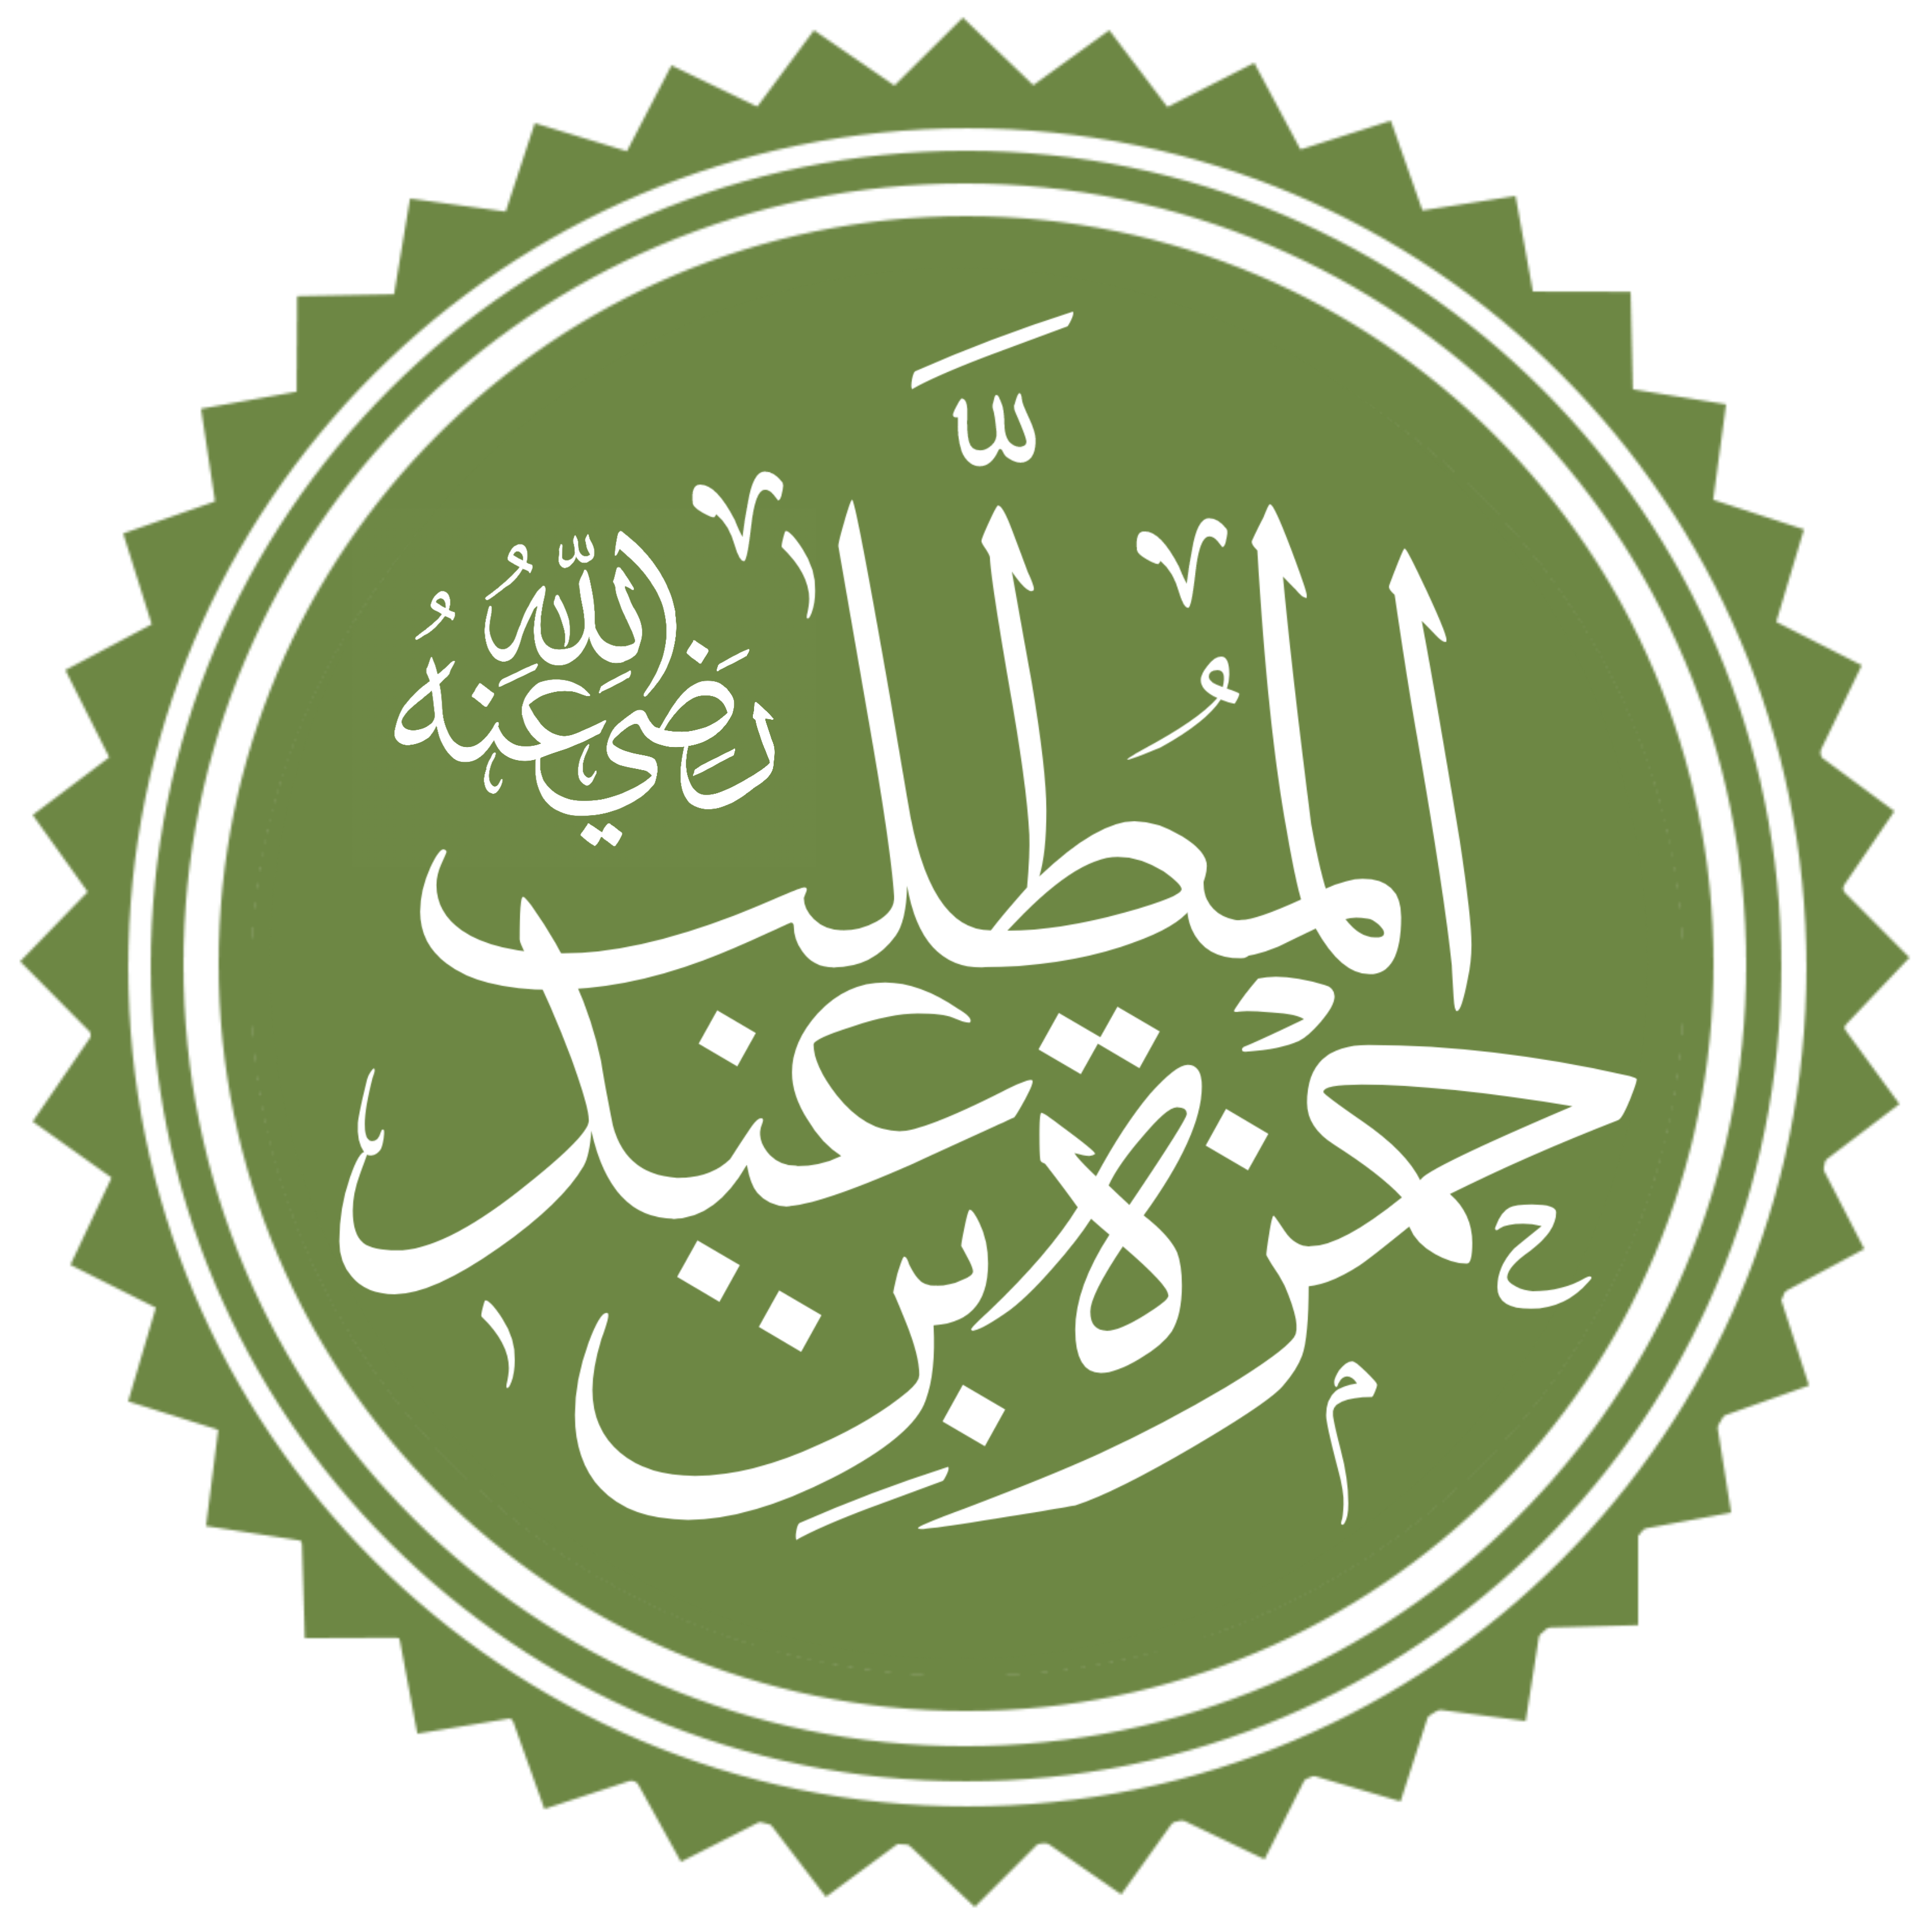 Hamza ibn Abdul-Muttalib Muhammads companion and uncle